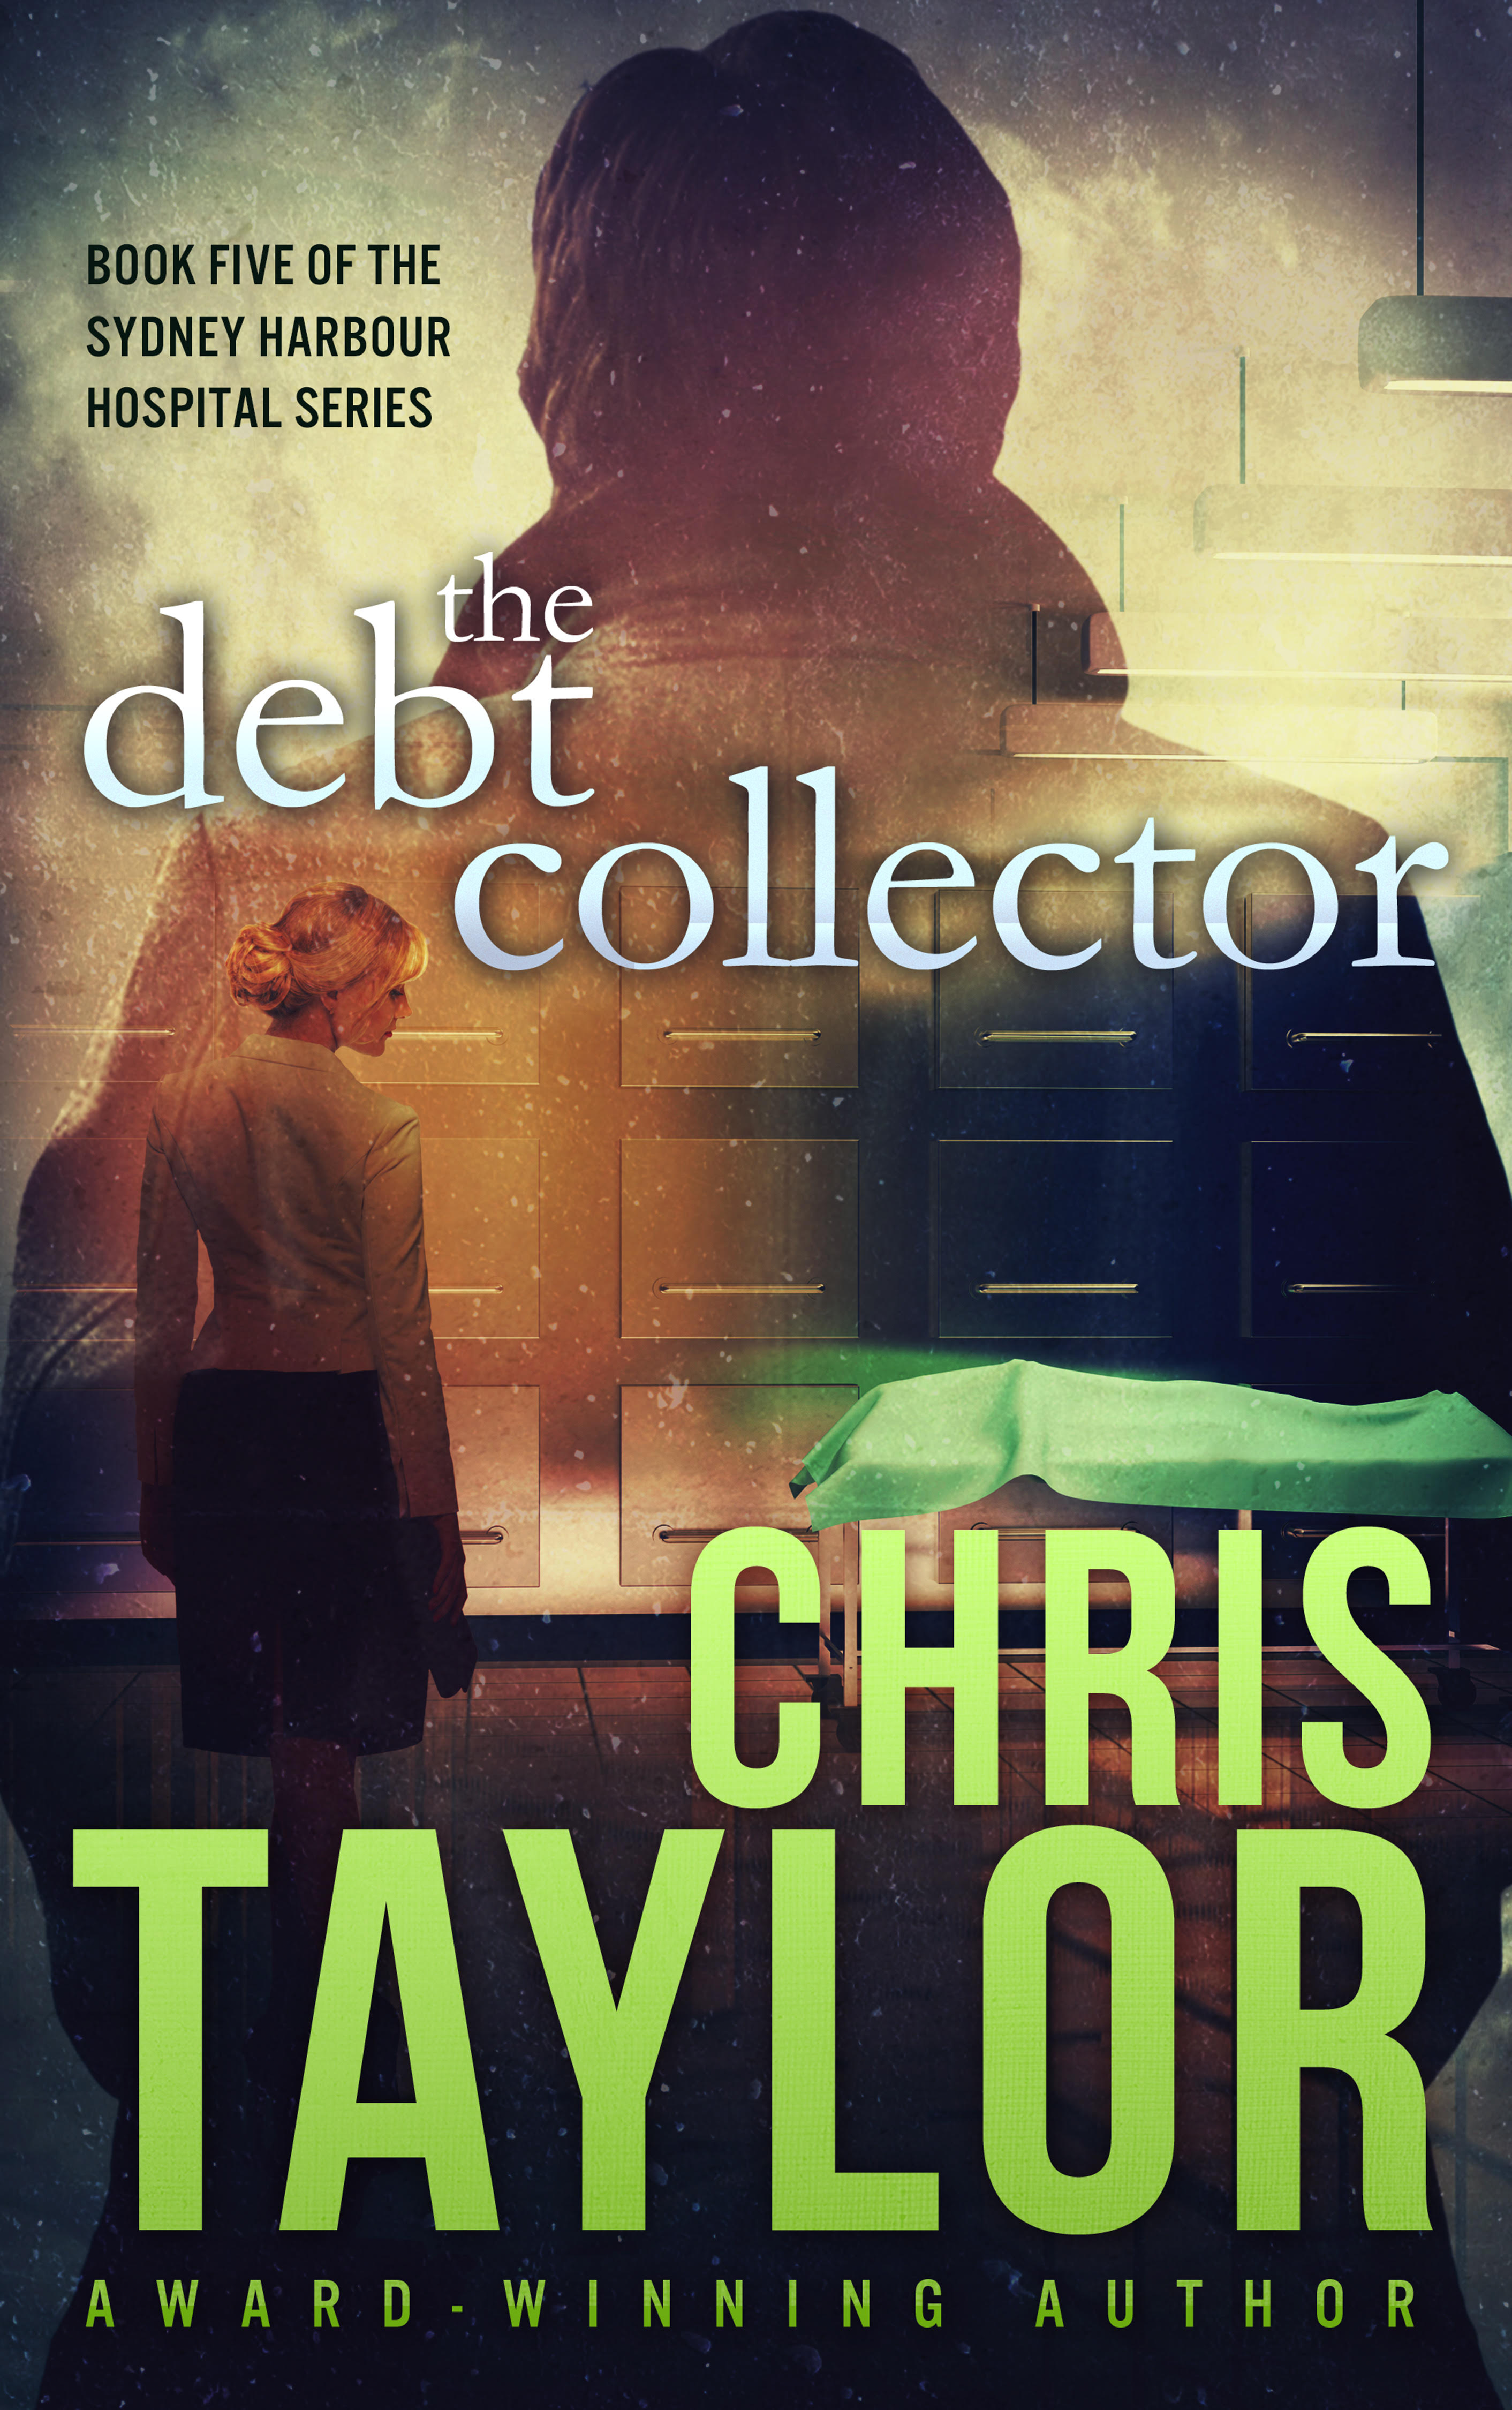 The Debt Collector by Chris Taylor. To be first published 26 June 2016.